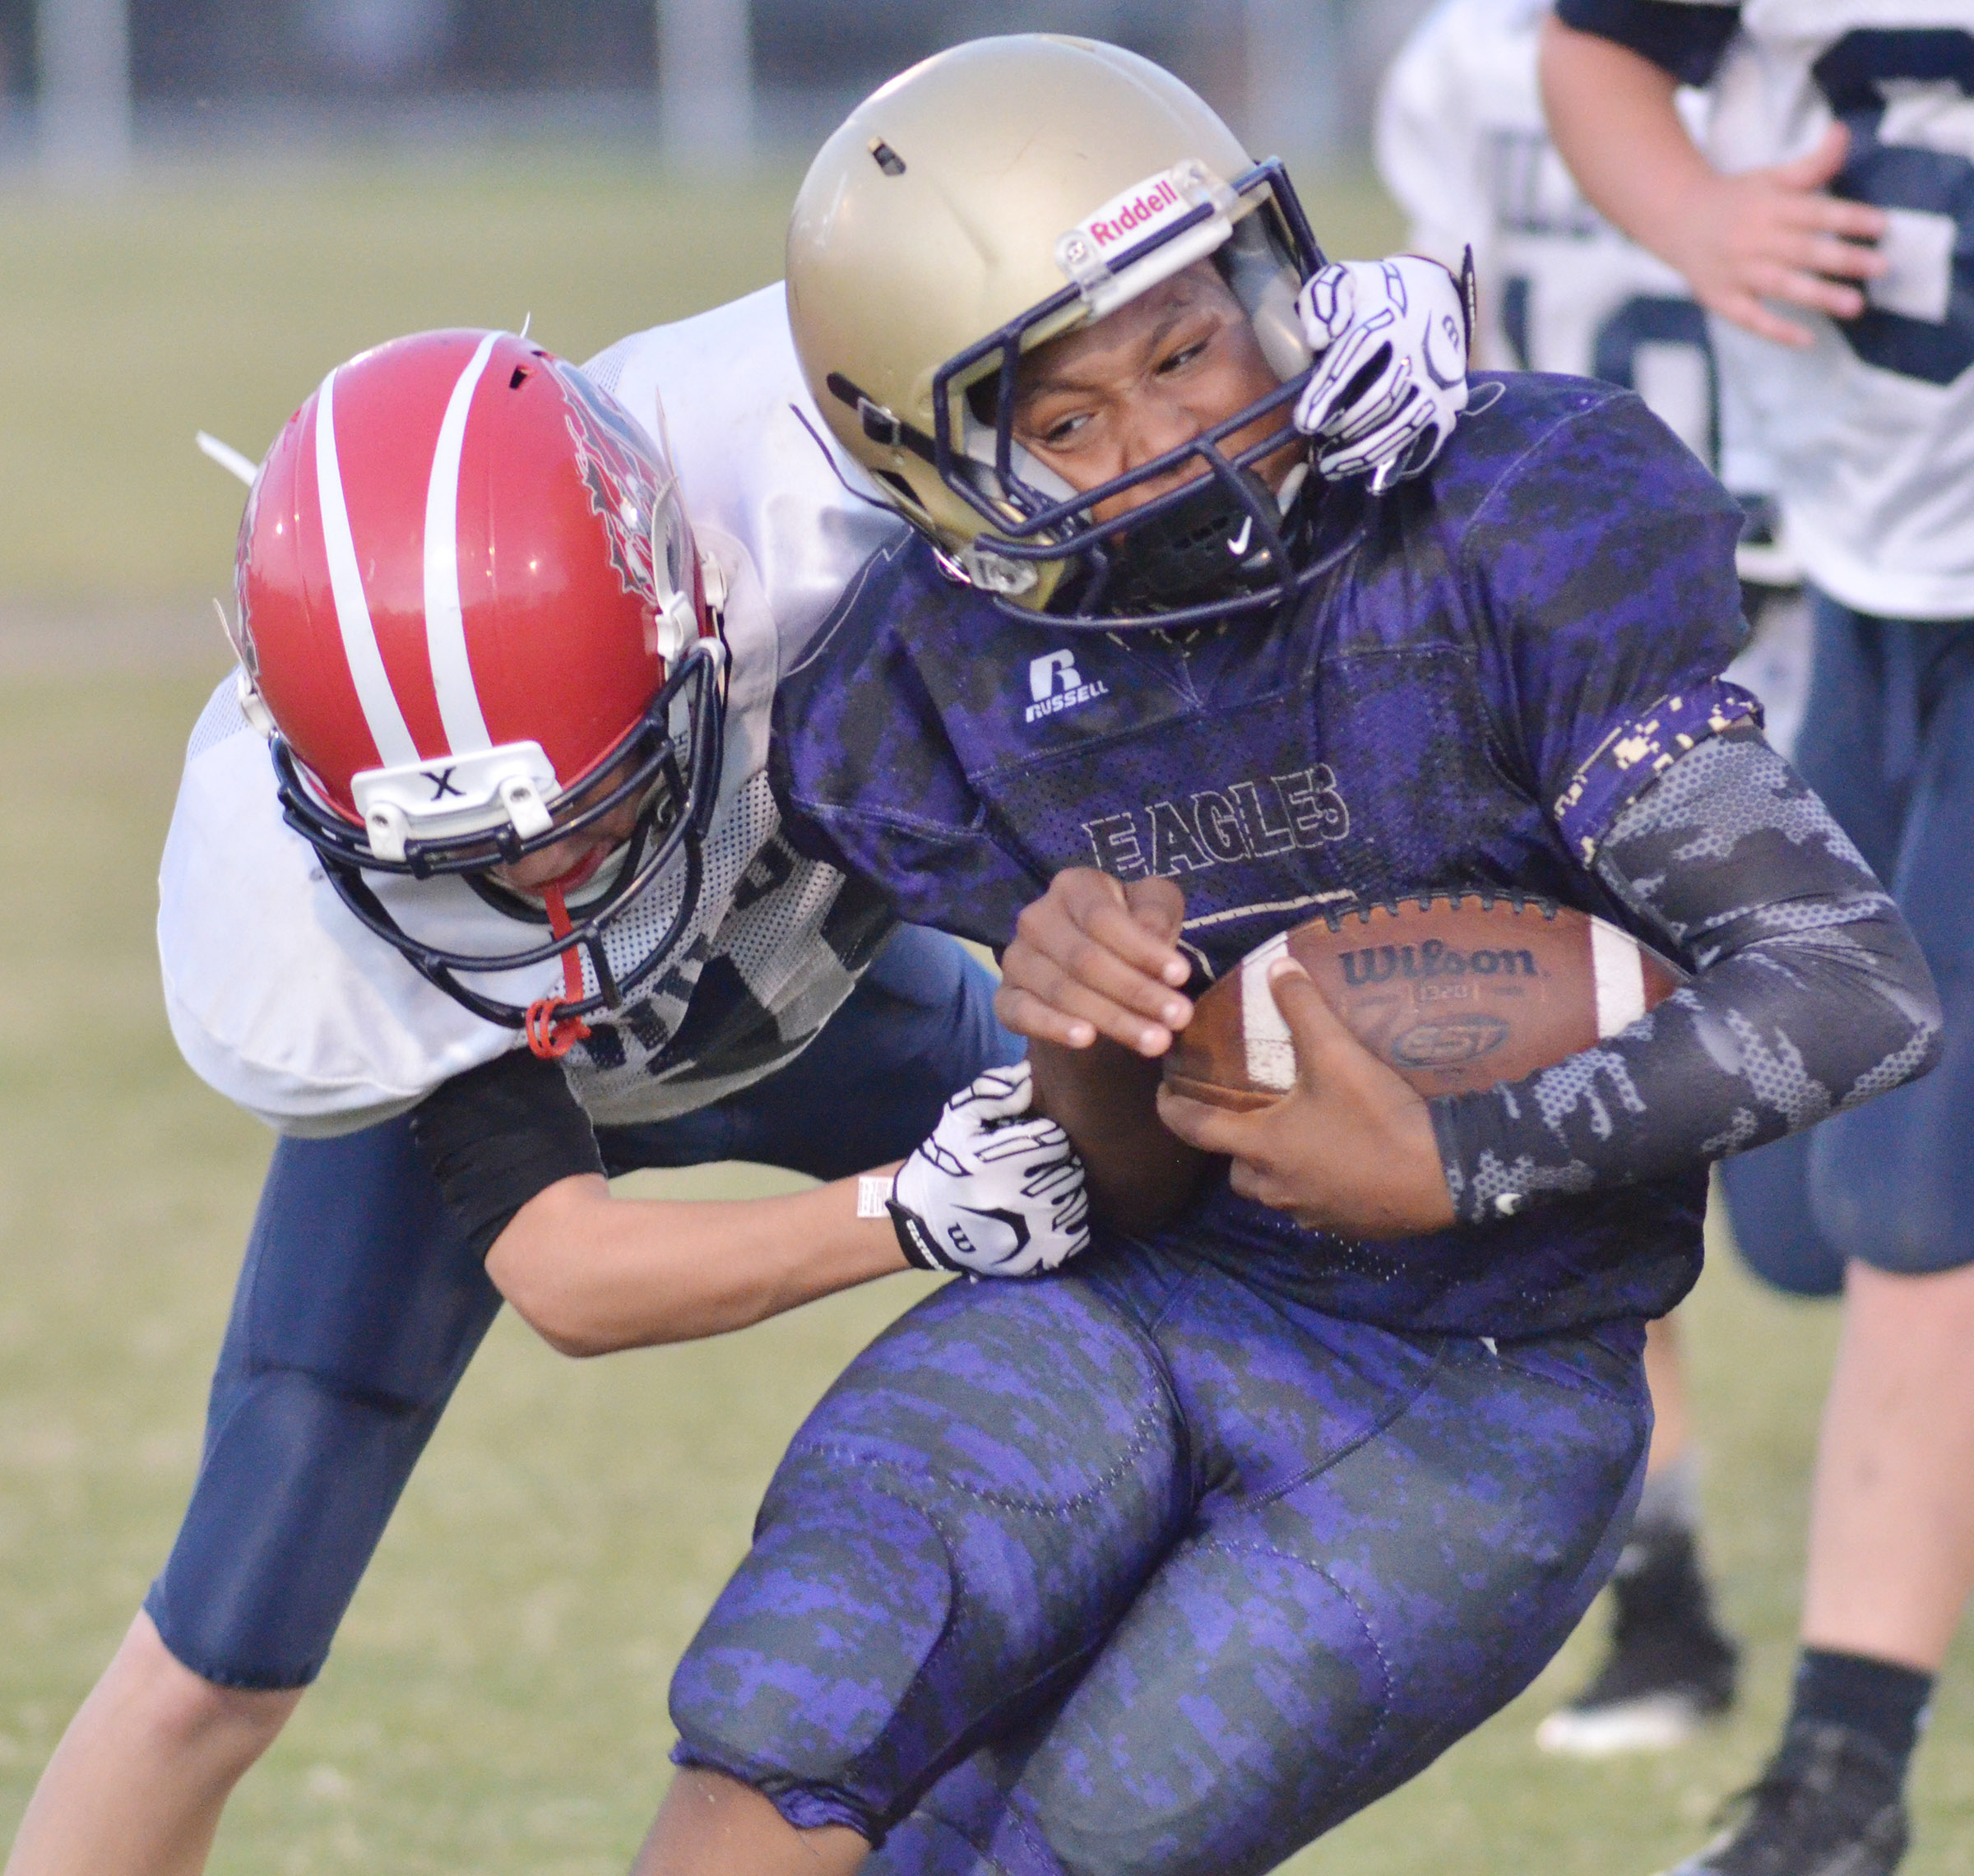 Campbellsville Middle School football player Deondre Weathers, a seventh-grader, has been chosen to represent Kentucky and play in Football University's national championship tournament.